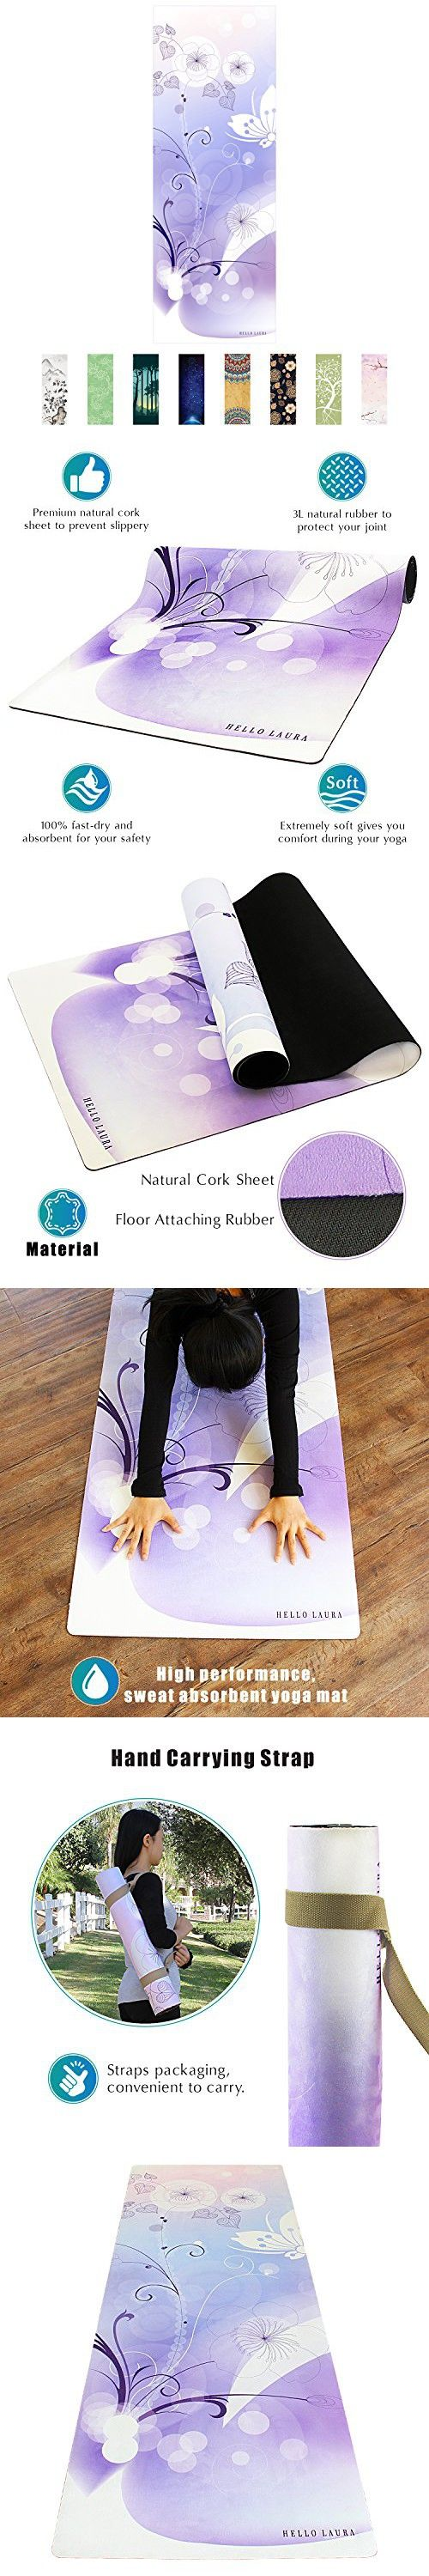 Hello Laura Premium Quality Performance Yoga Mat European Suede Surface Texture Pvc Free Anti Slippery Eco Friendly For Bikram Hot Yoga Pilates And Other Exercise Under Water Theme Hot